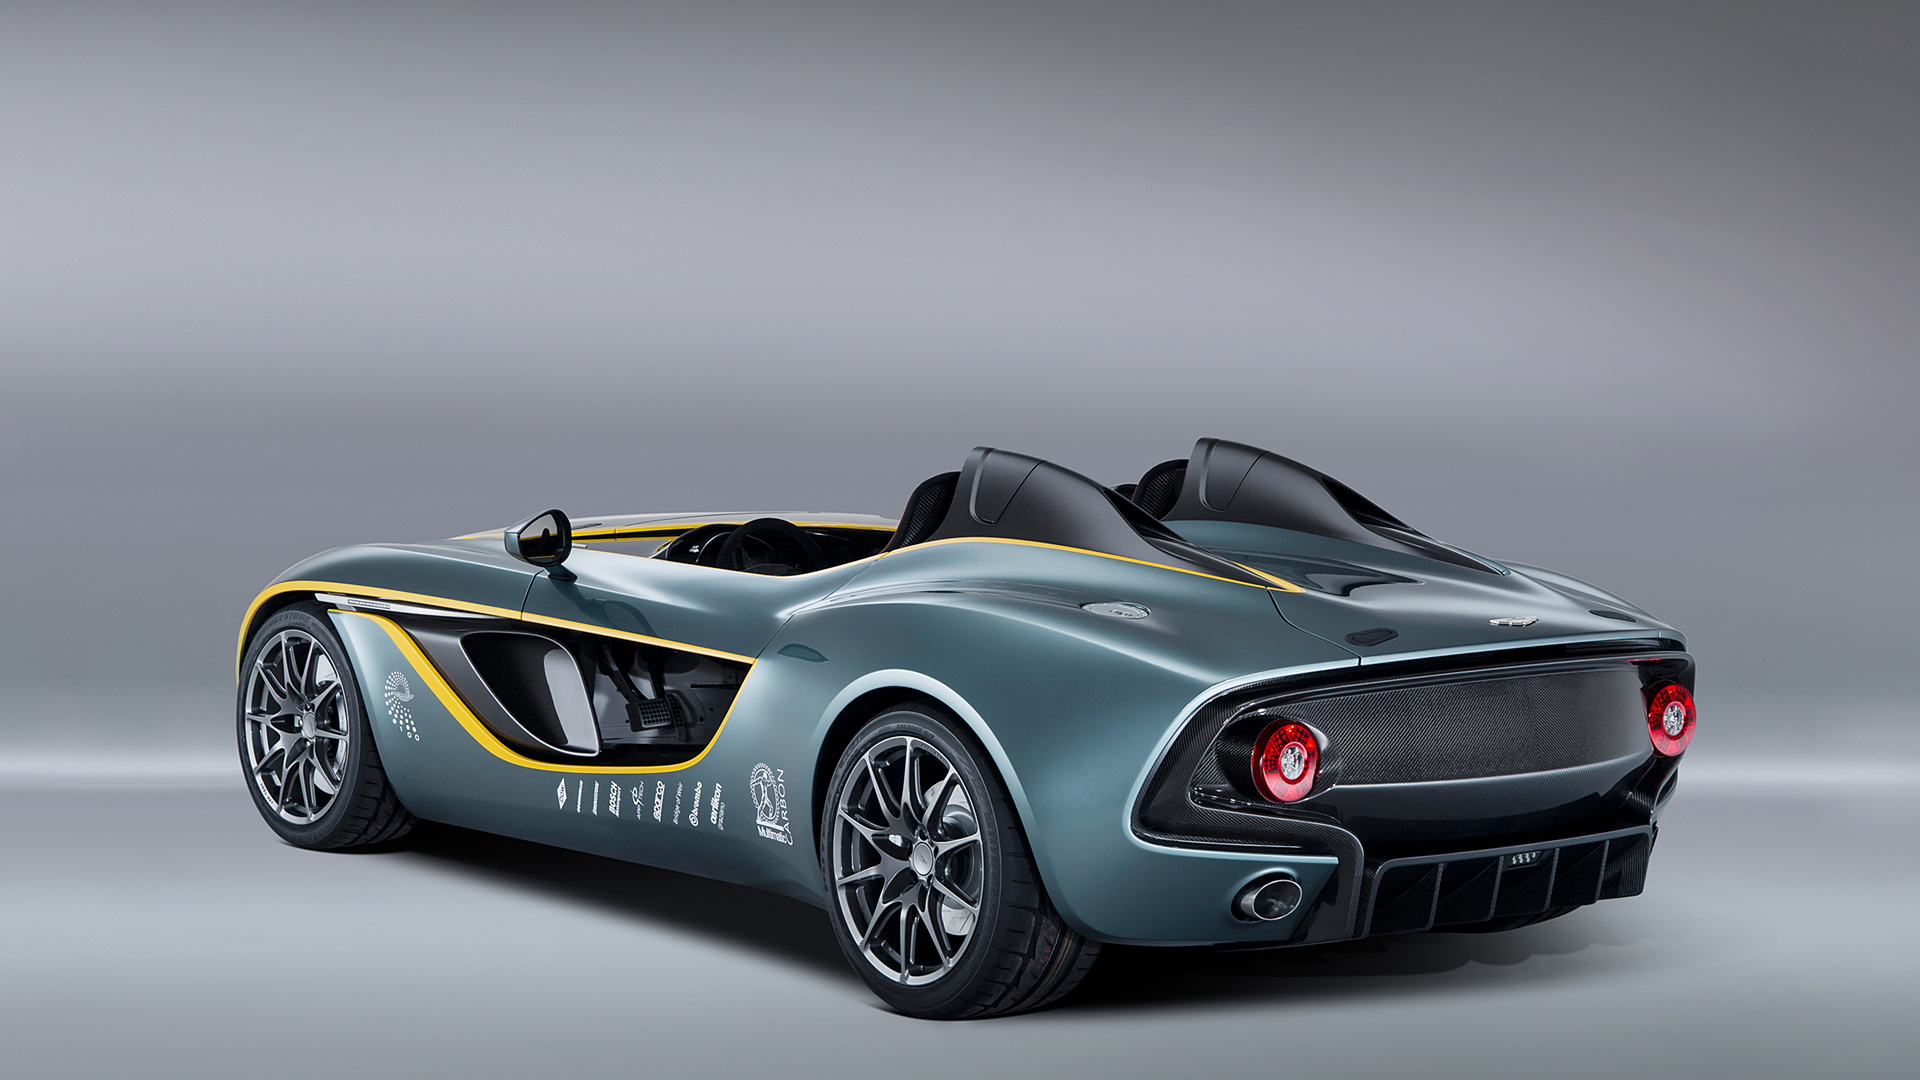 2019 Aston Martin CC100 Speedster Concept photo - 6